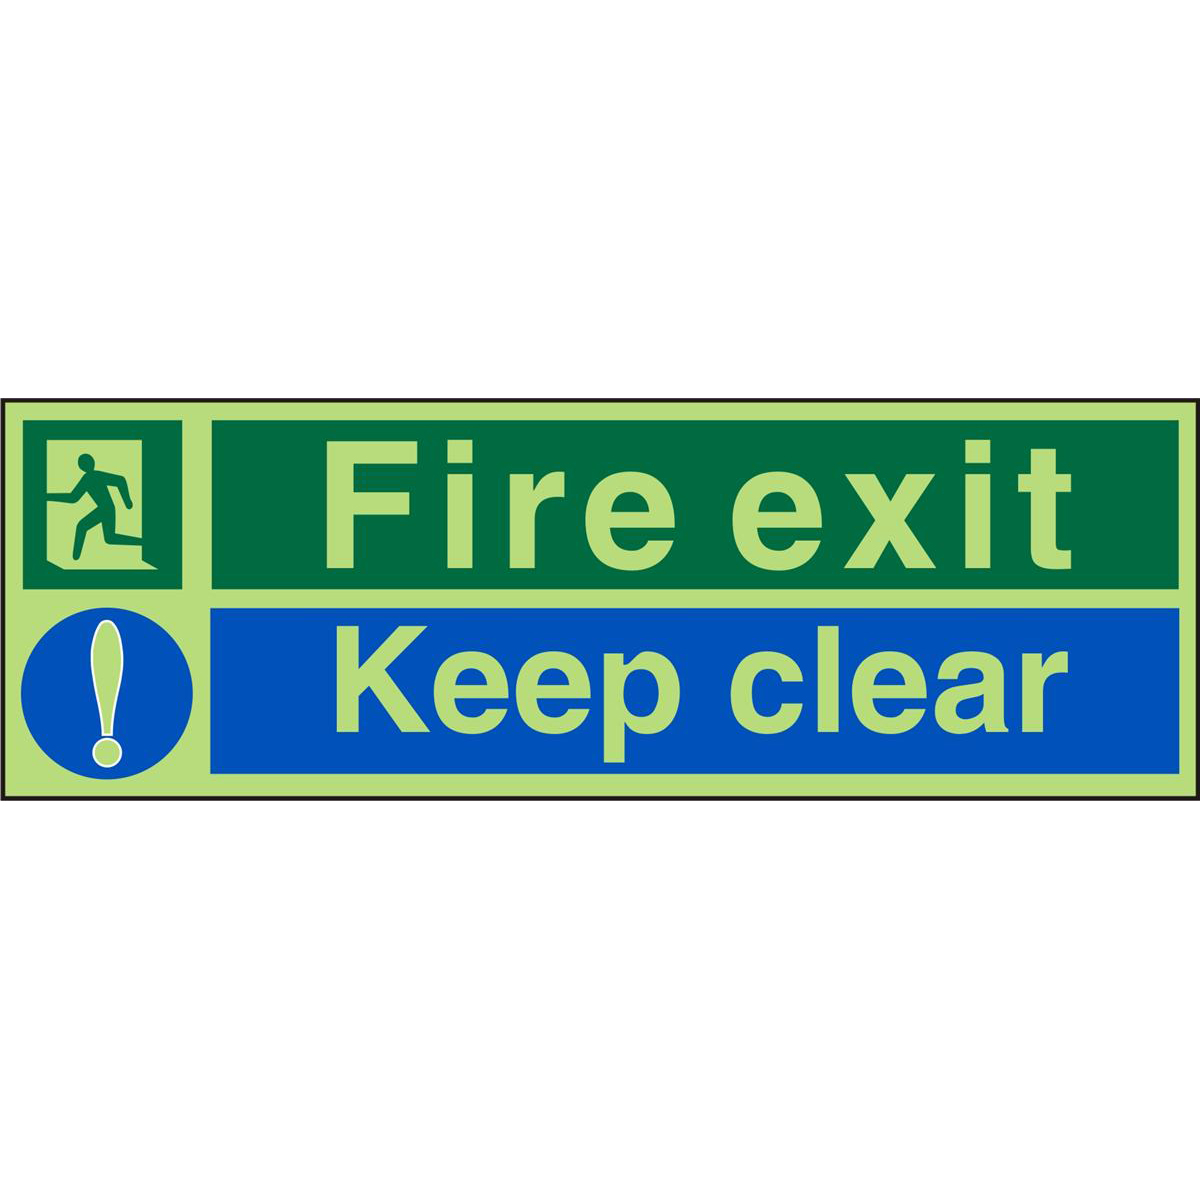 Photolum Sign 600x200 S/A Vinyl Fire Exit Keep Clear Ref PSP126SAV600x200 *Up to 10 Day Leadtime*